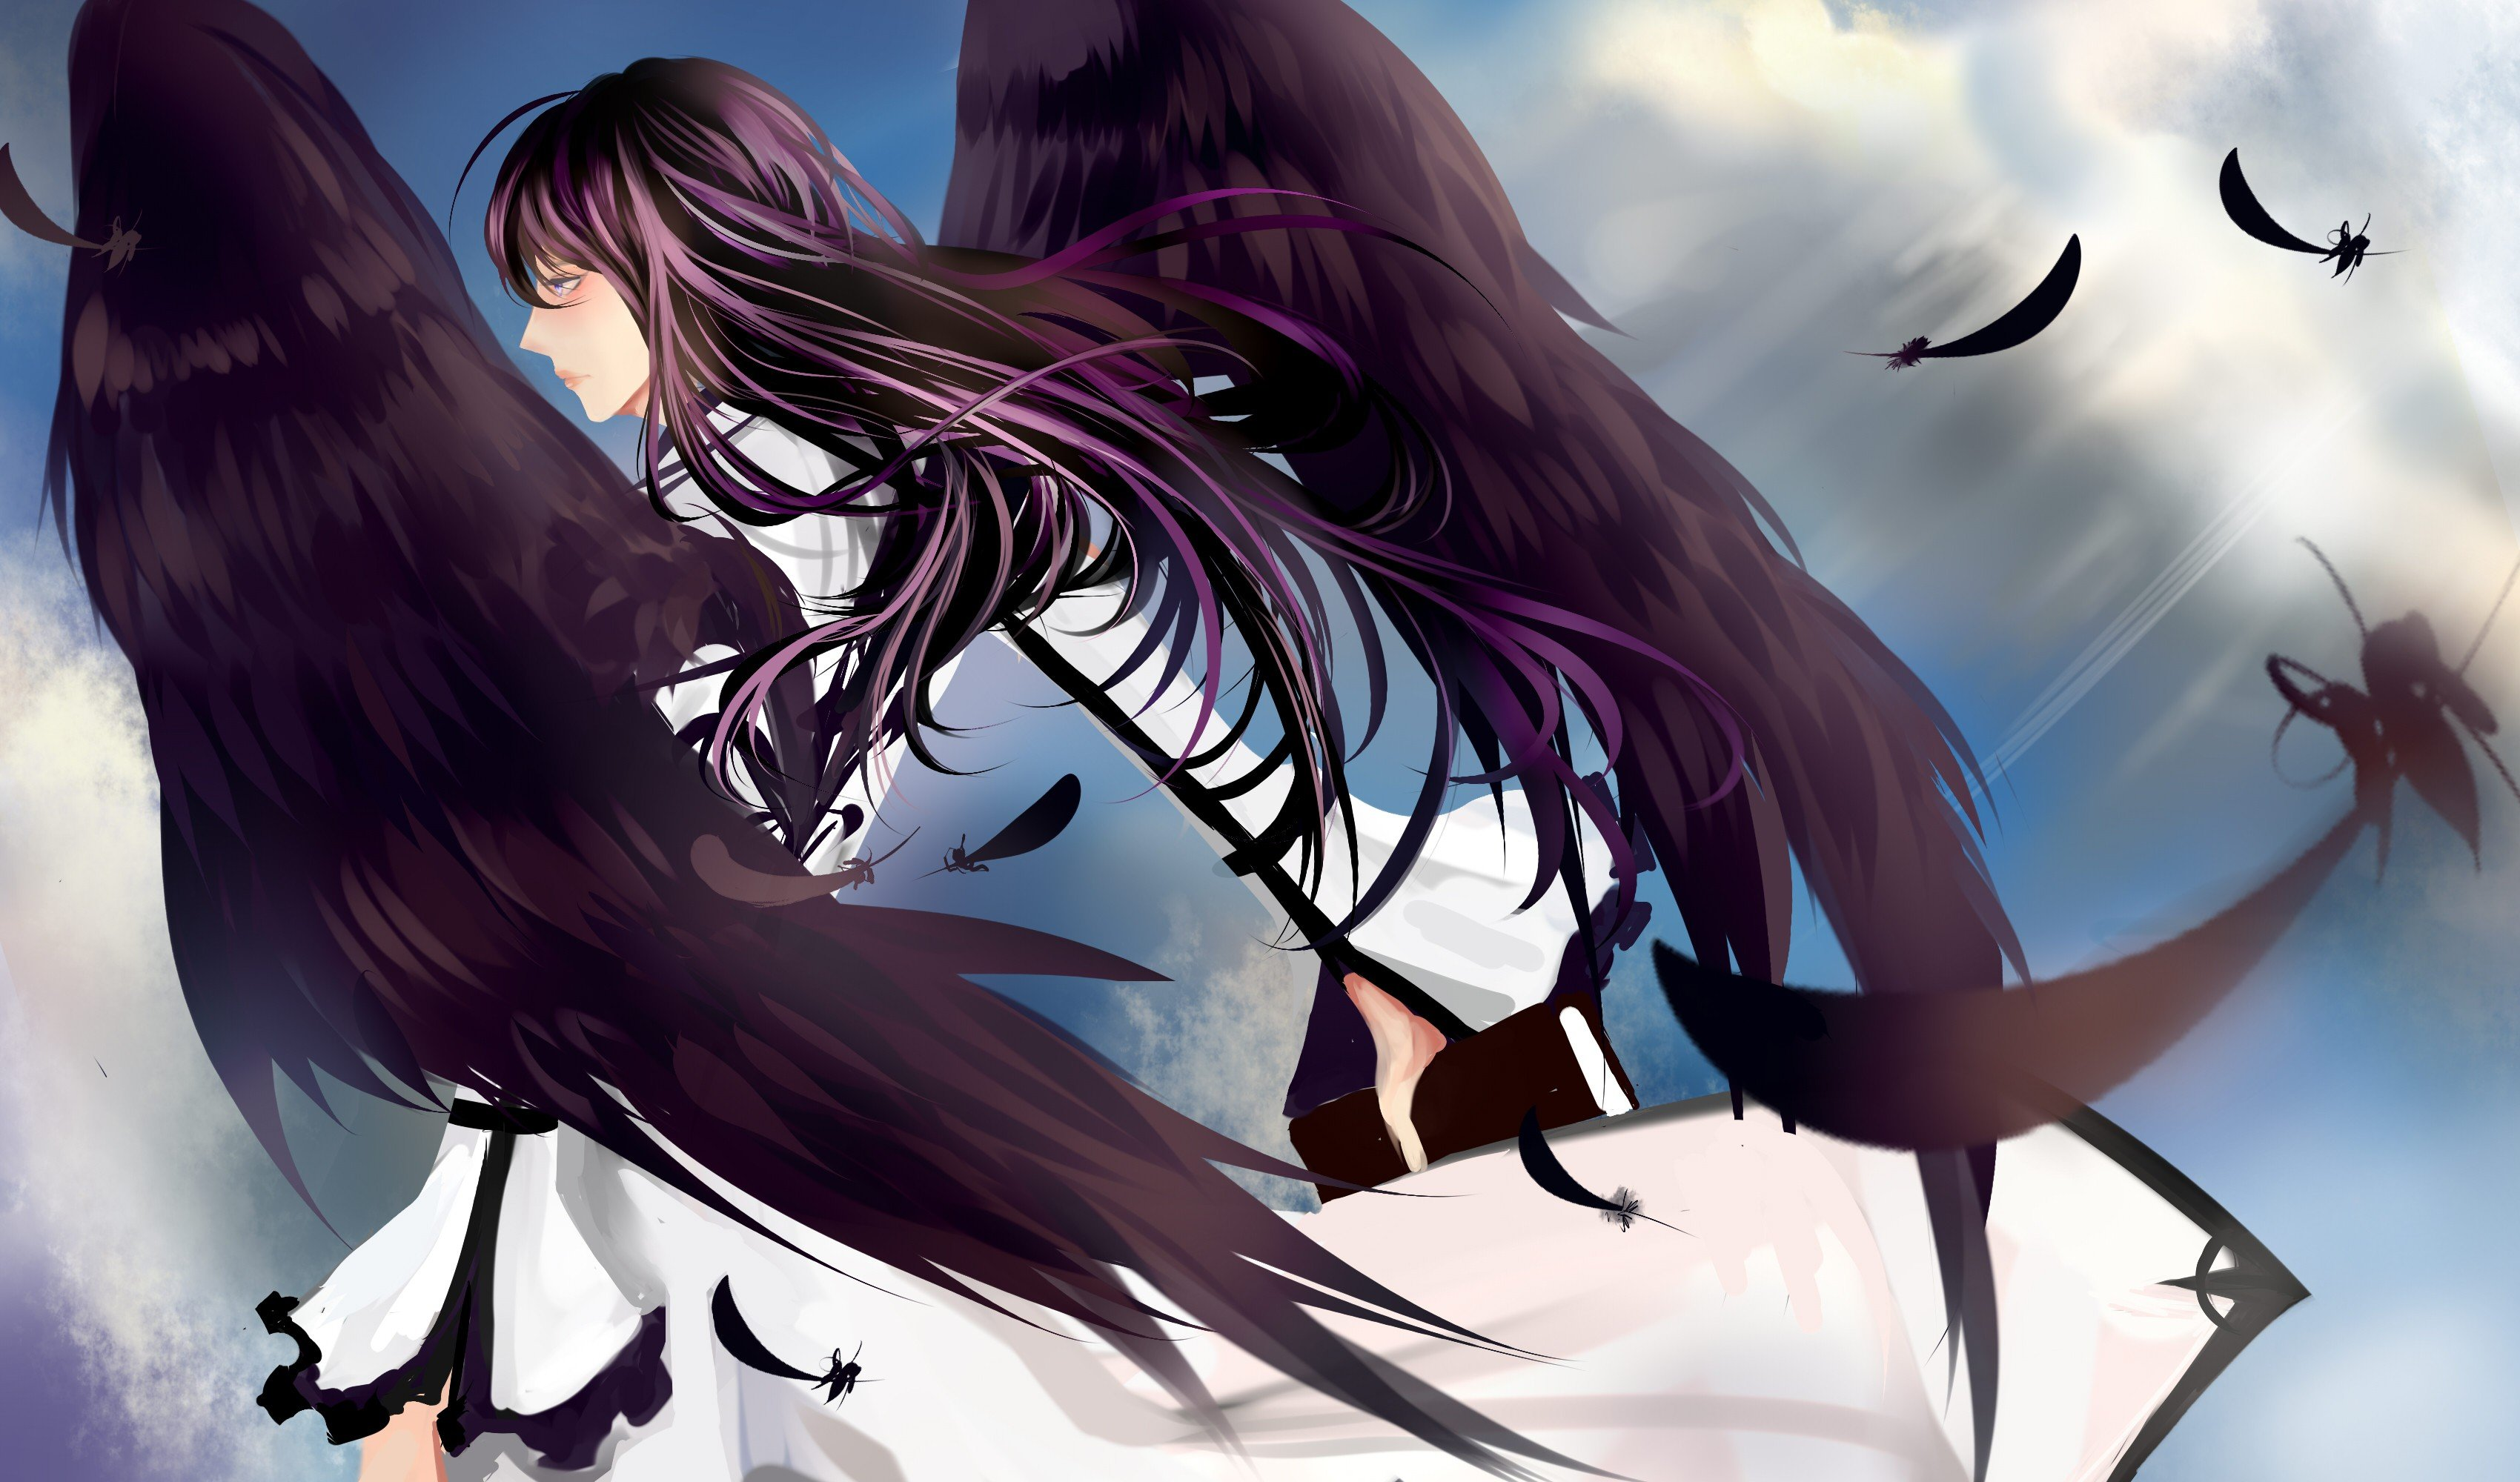 Clouds Wings Vocaloid Dress Back Blue Eyes Long Hair Feathers Purple Books Anime Boys White Kamui Gakupo Dark Skies Wallpaper